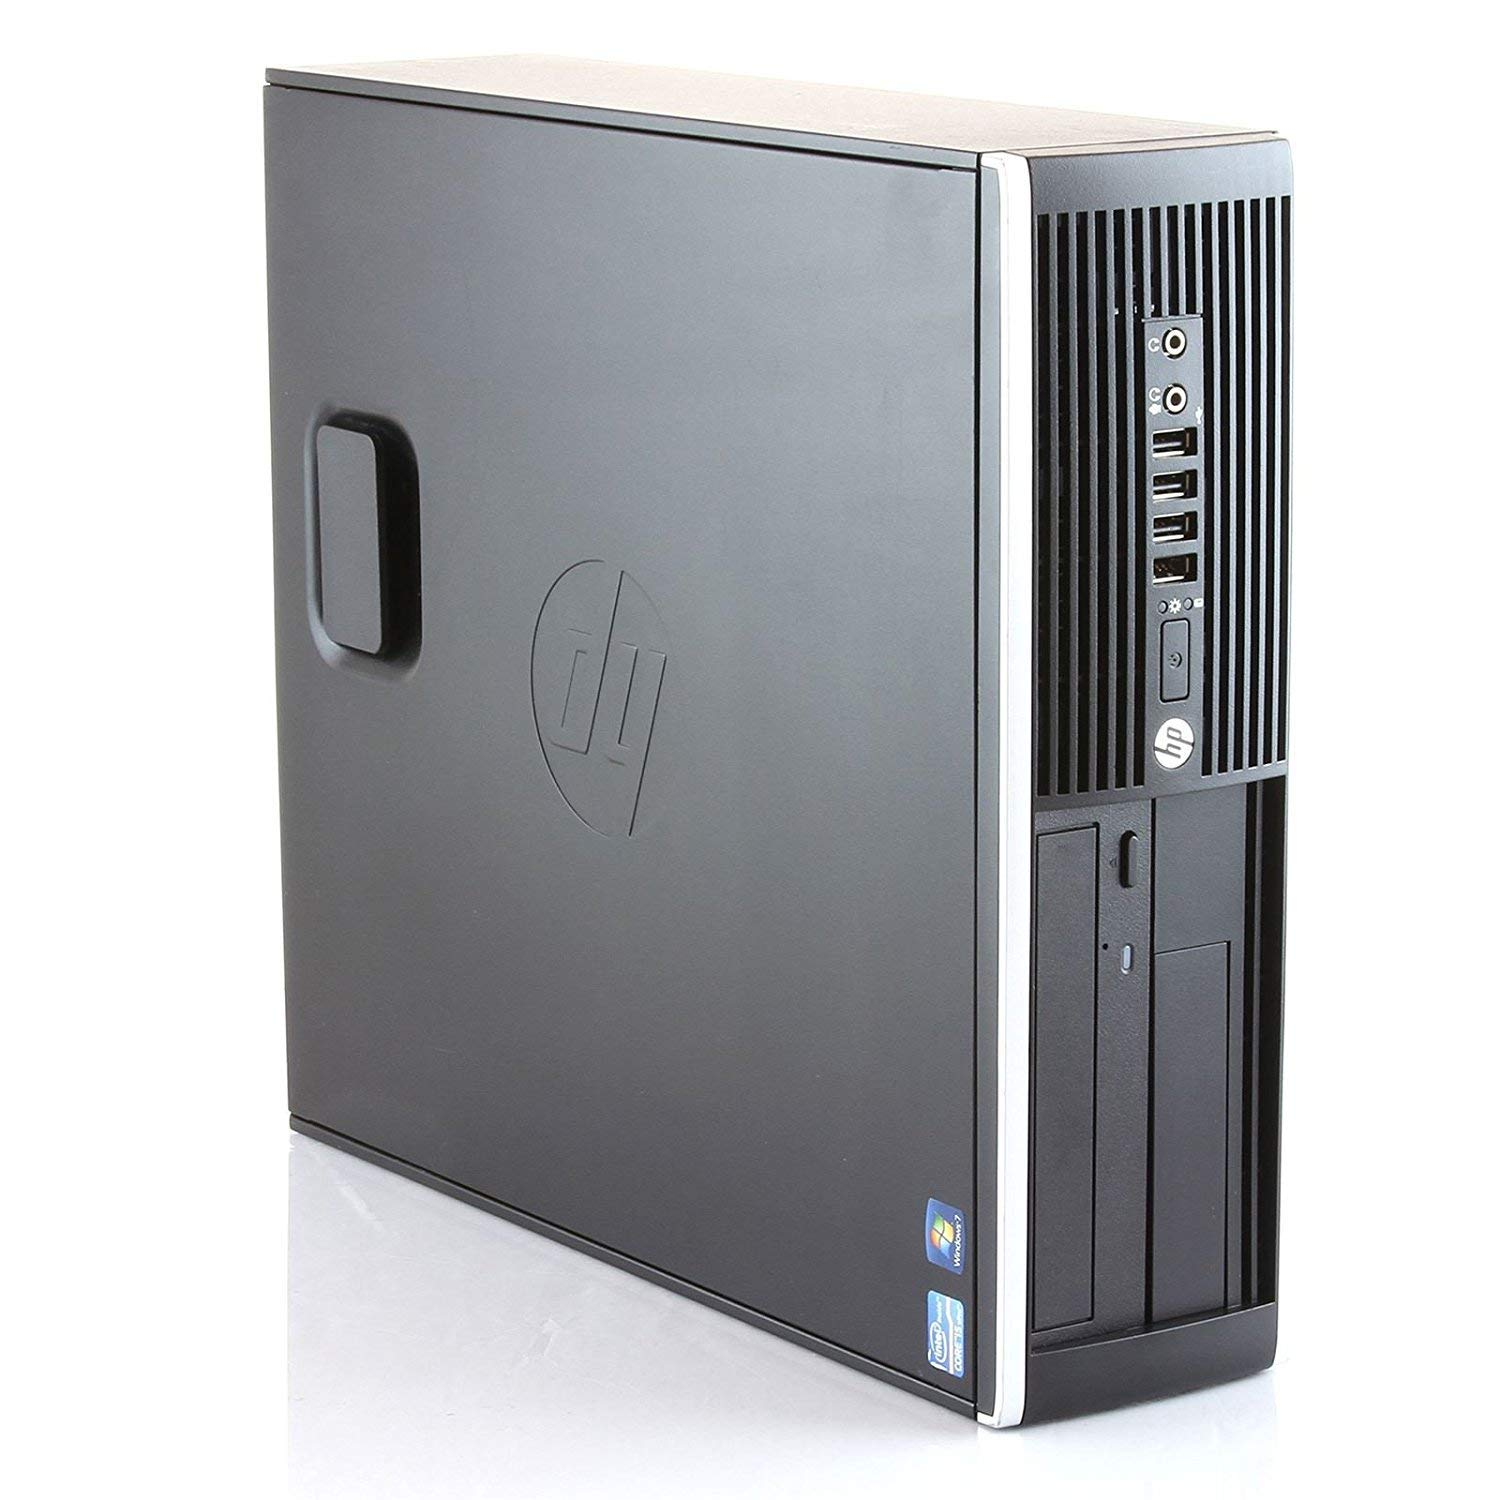 Hp Elite 8300-PC-desktop (Intel I5-3470,3,2,DVD, 8 Hard GB RAM, SSD 960 Hard GB, WIFI PCI Win10PRO)(REFURBISHED)